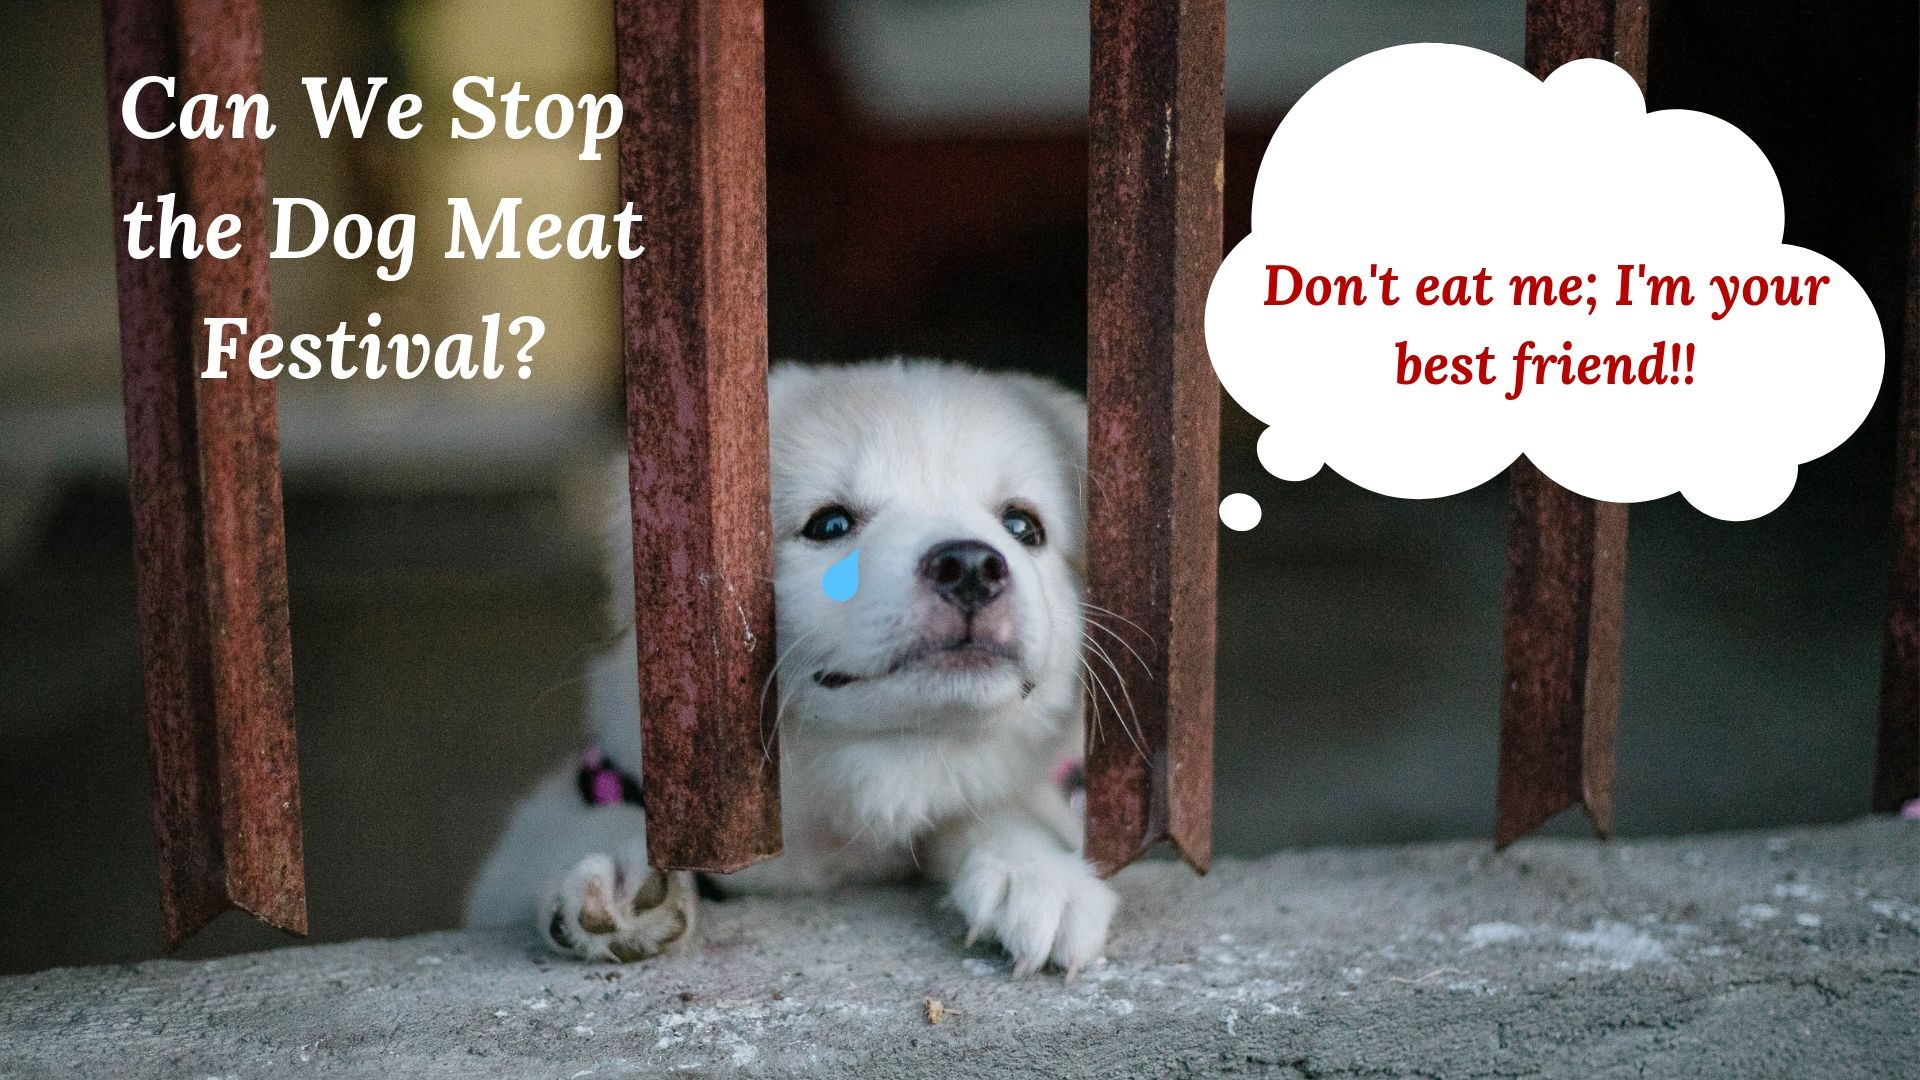 Can We Stop the Dog Meat Festival?